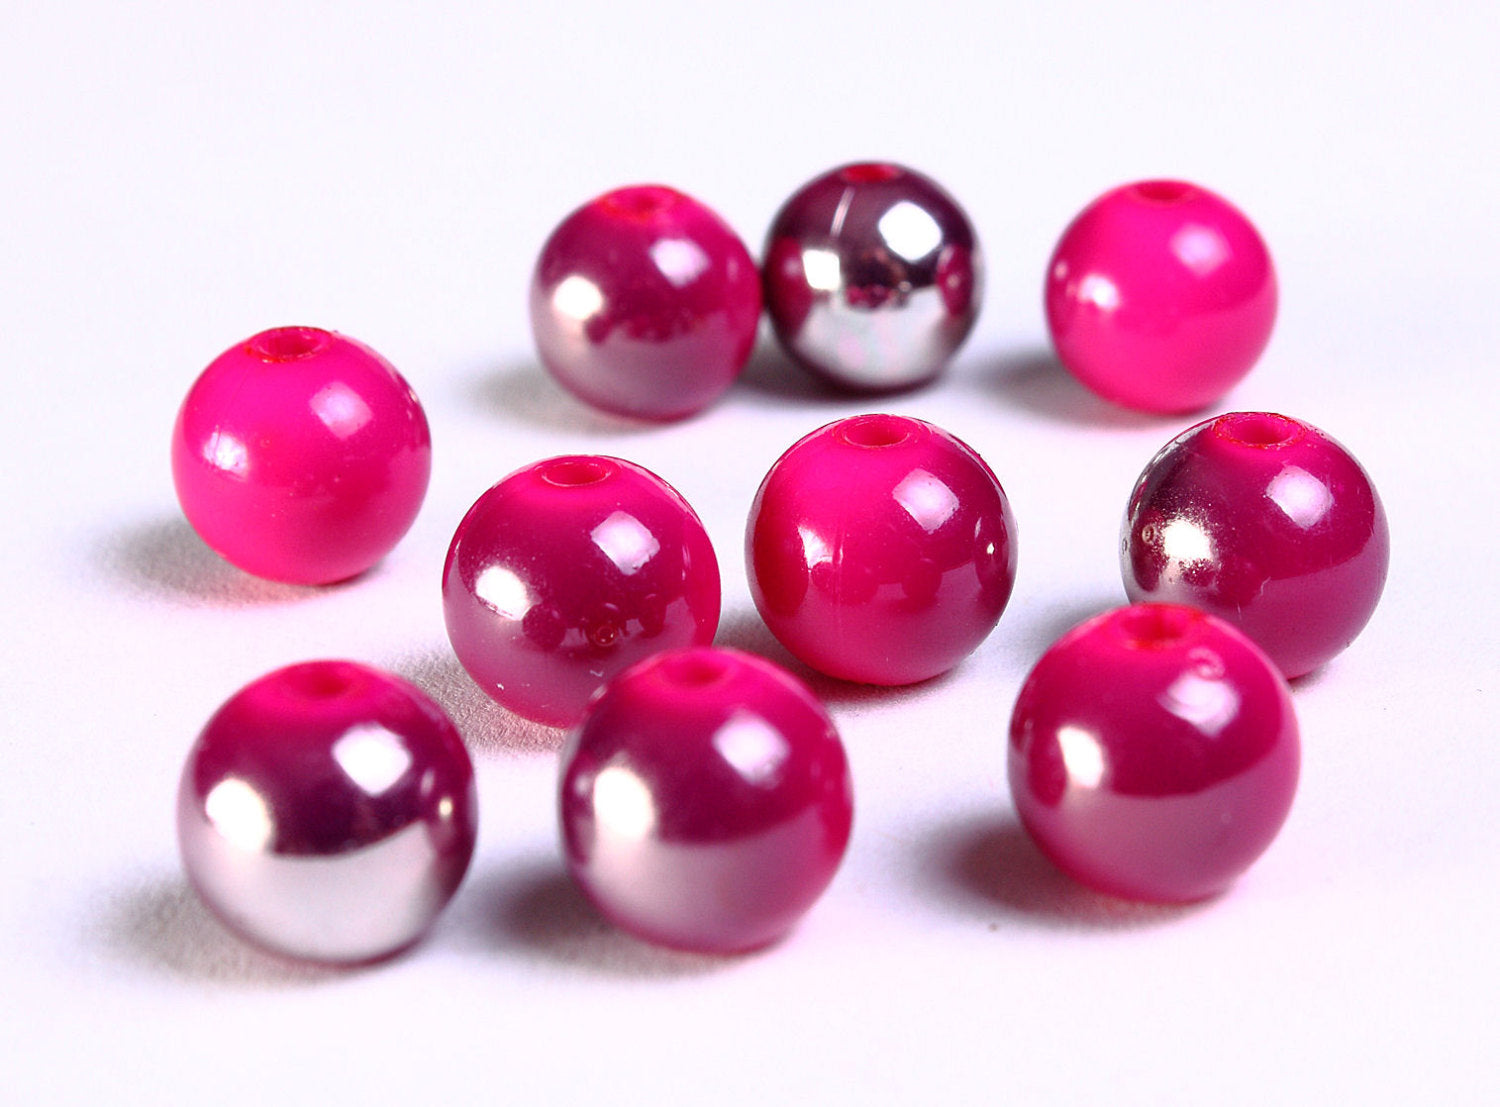 10mm Pink grey round beads - 10mm pink gray resin beads - 10 pieces (881)